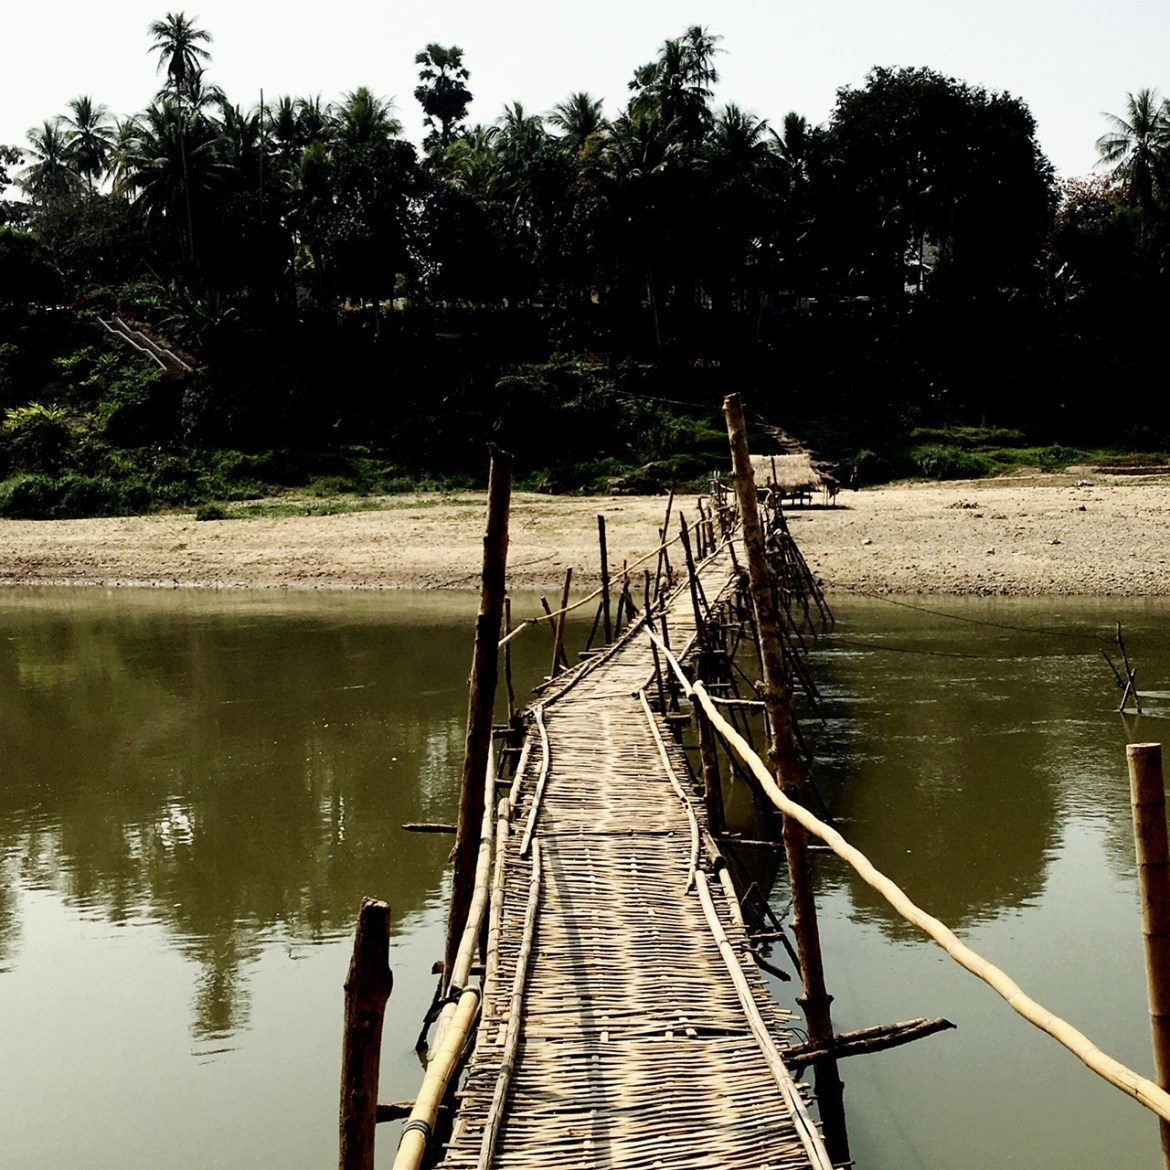 Crossing the bamboo bridges, one of the more petrifying things to do in Luang Prabang